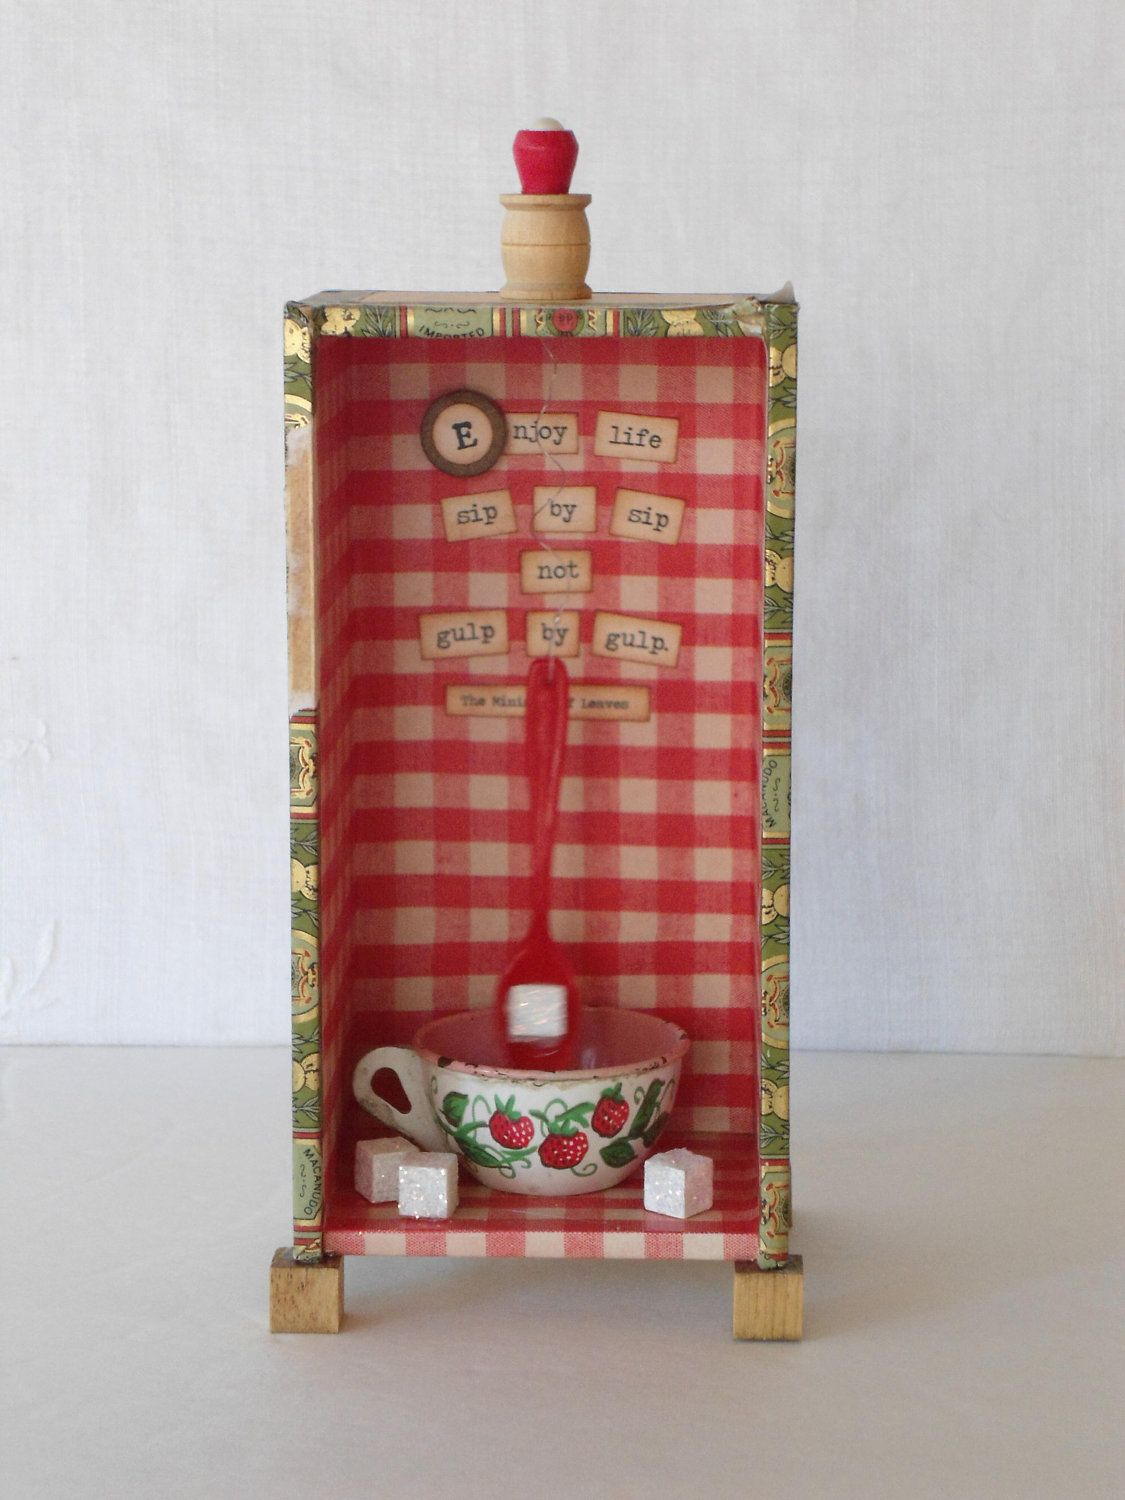 Kitchen Diorama Made Of Cereal Box: Tea Lover Kitsch 3D Shadowbox Diorama Kitchen Chime